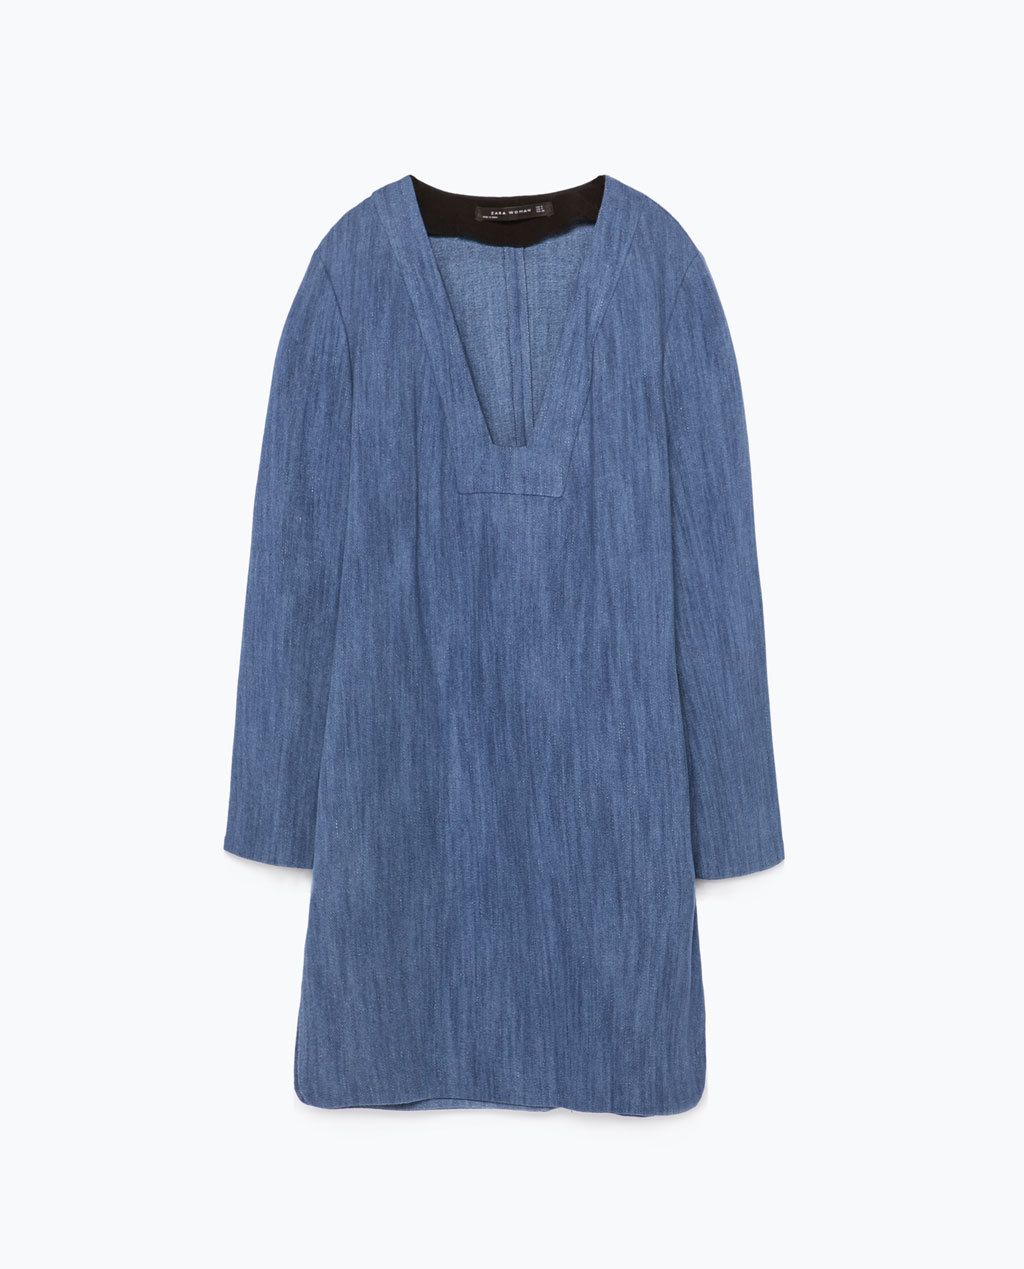 Bell Sleeve Tunic - style: tunic; length: mid thigh; neckline: low v-neck; pattern: plain; predominant colour: denim; occasions: casual, creative work; fit: straight cut; sleeve length: long sleeve; sleeve style: standard; texture group: denim; pattern type: fabric; trends: alternative denim; season: s/s 2015